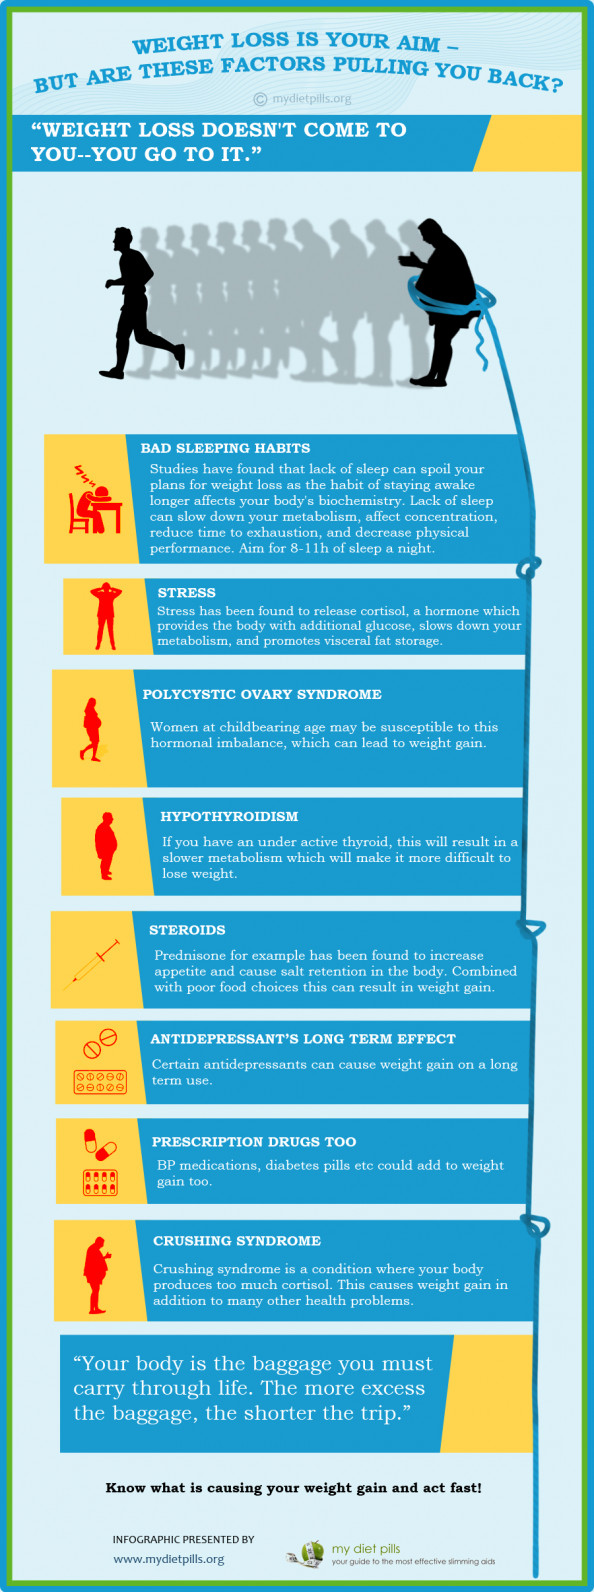 Weight loss is your aim, but are these factors pulling you back Infographic